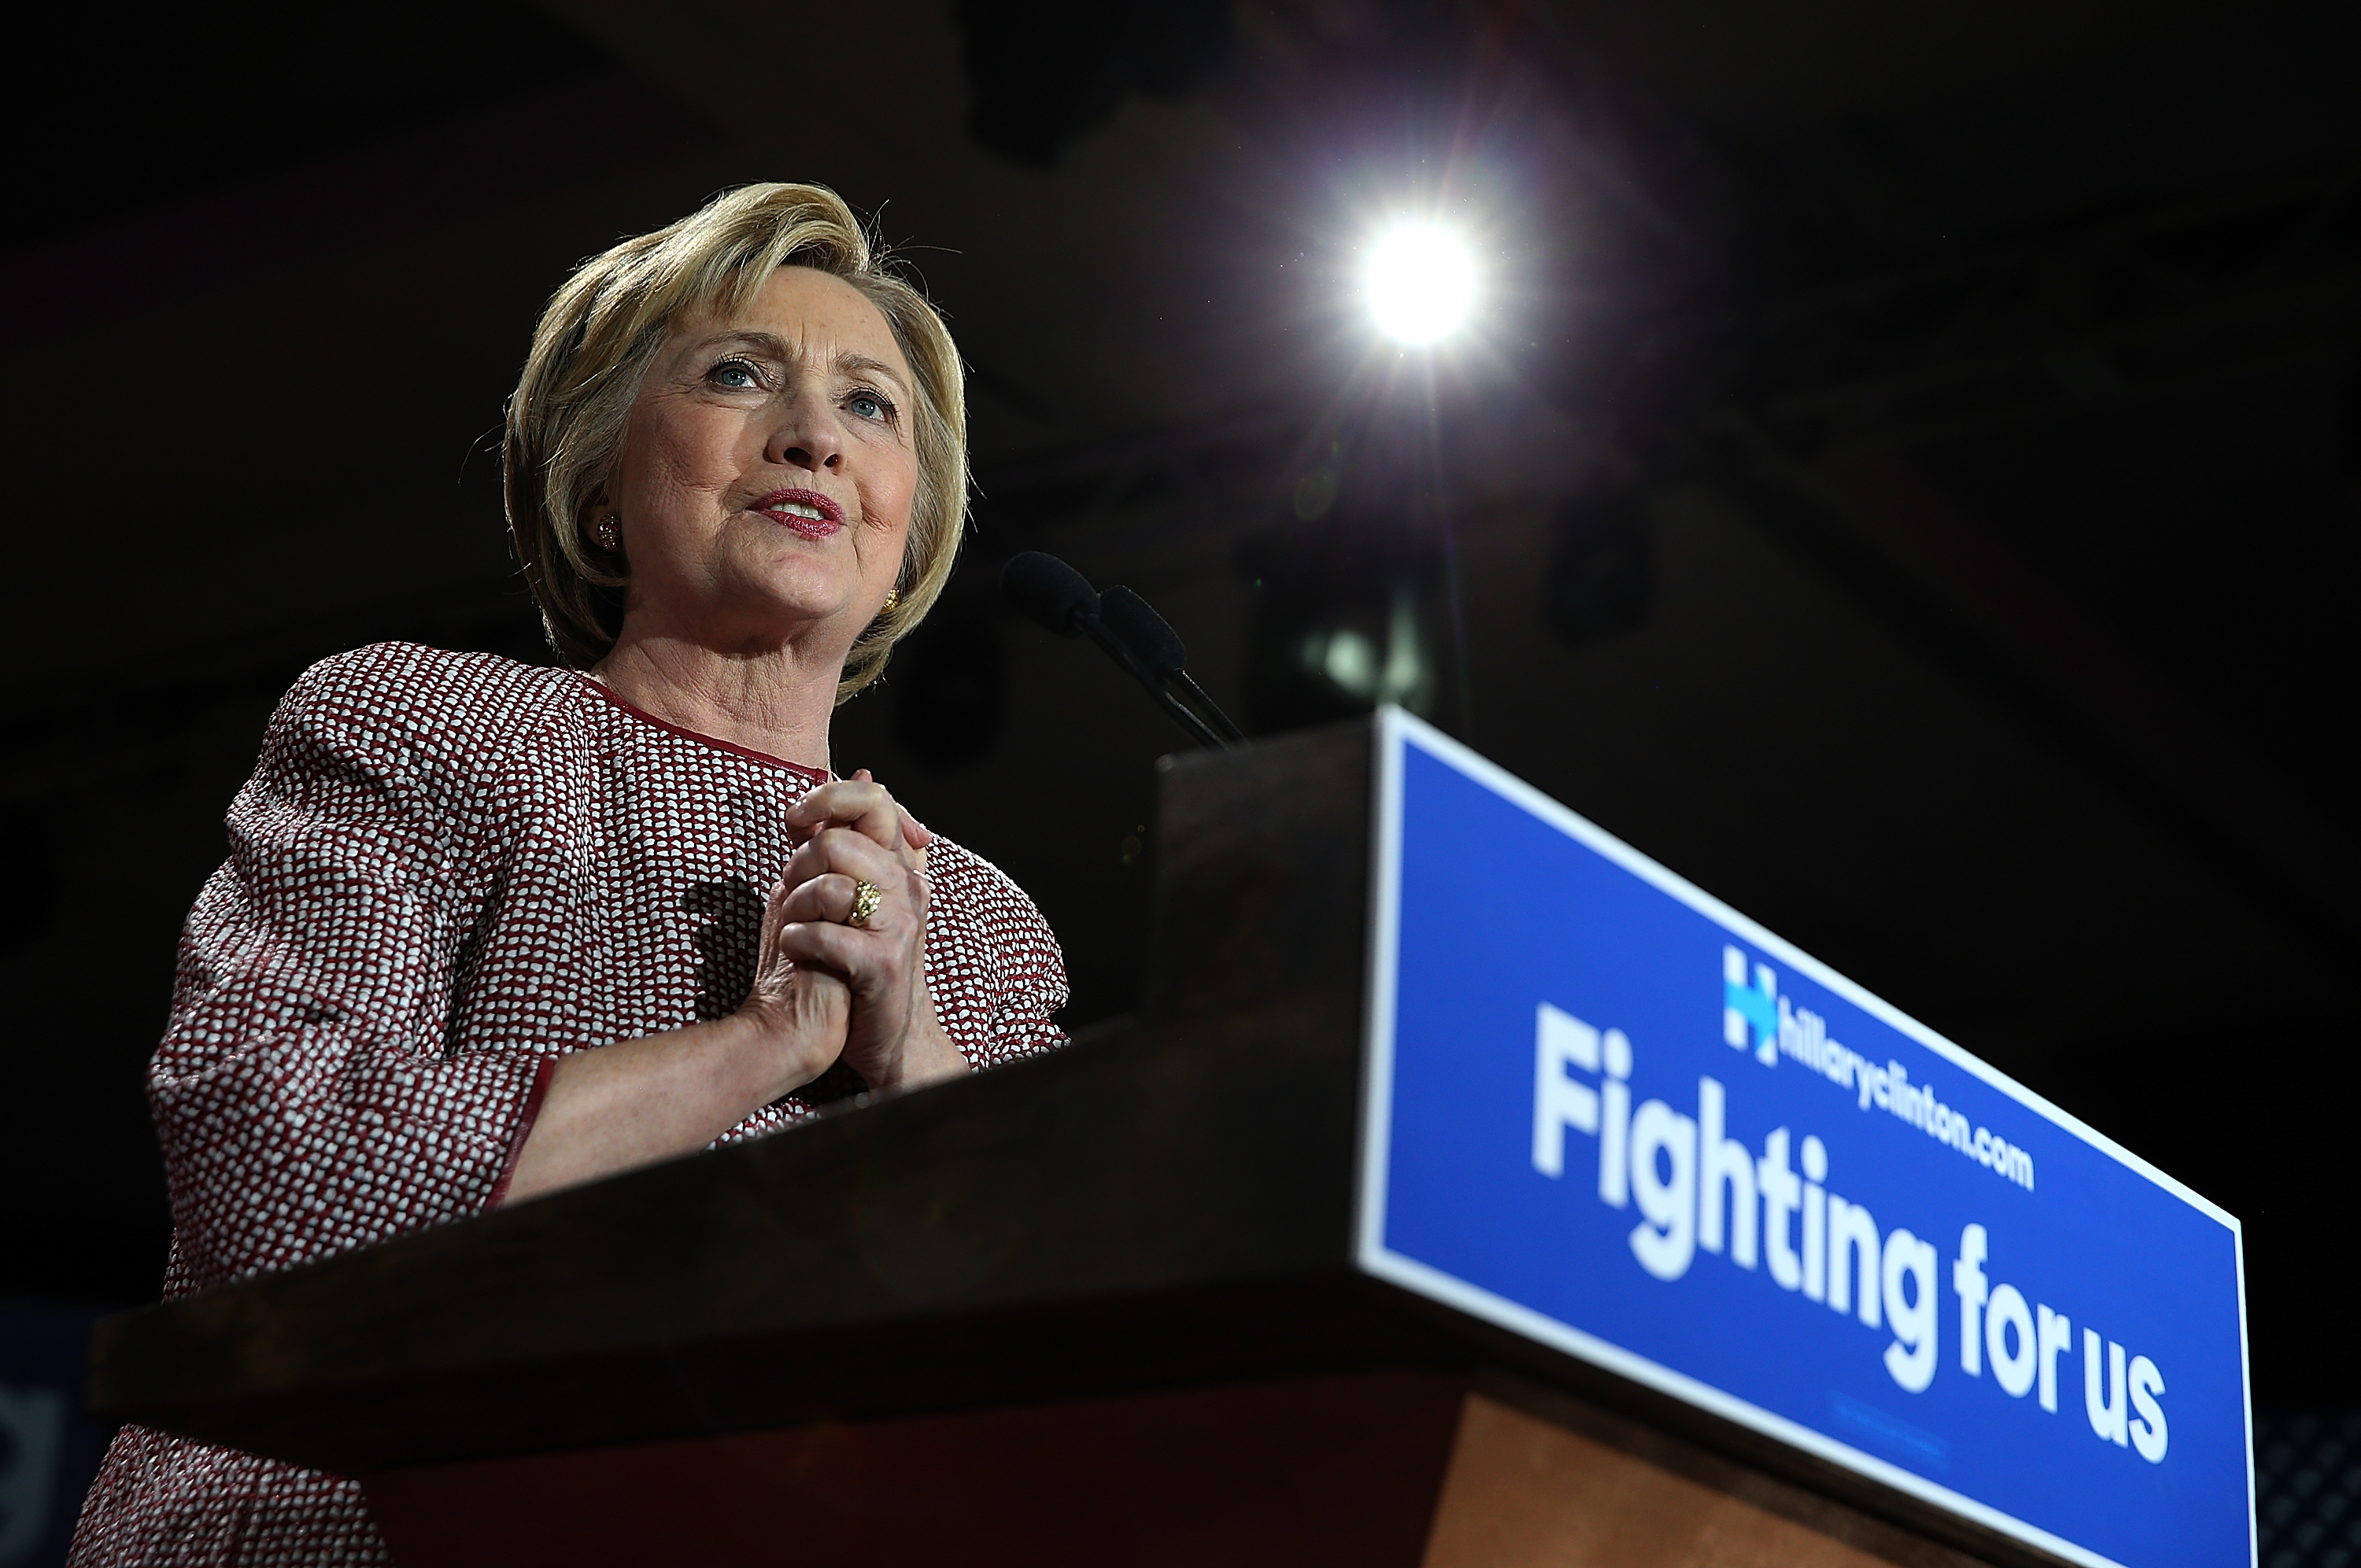 Democratic presidential candidate former Secretary of State Hillary Clinton speaks during a primary election night gathering on April 19, 2016 in New York City.